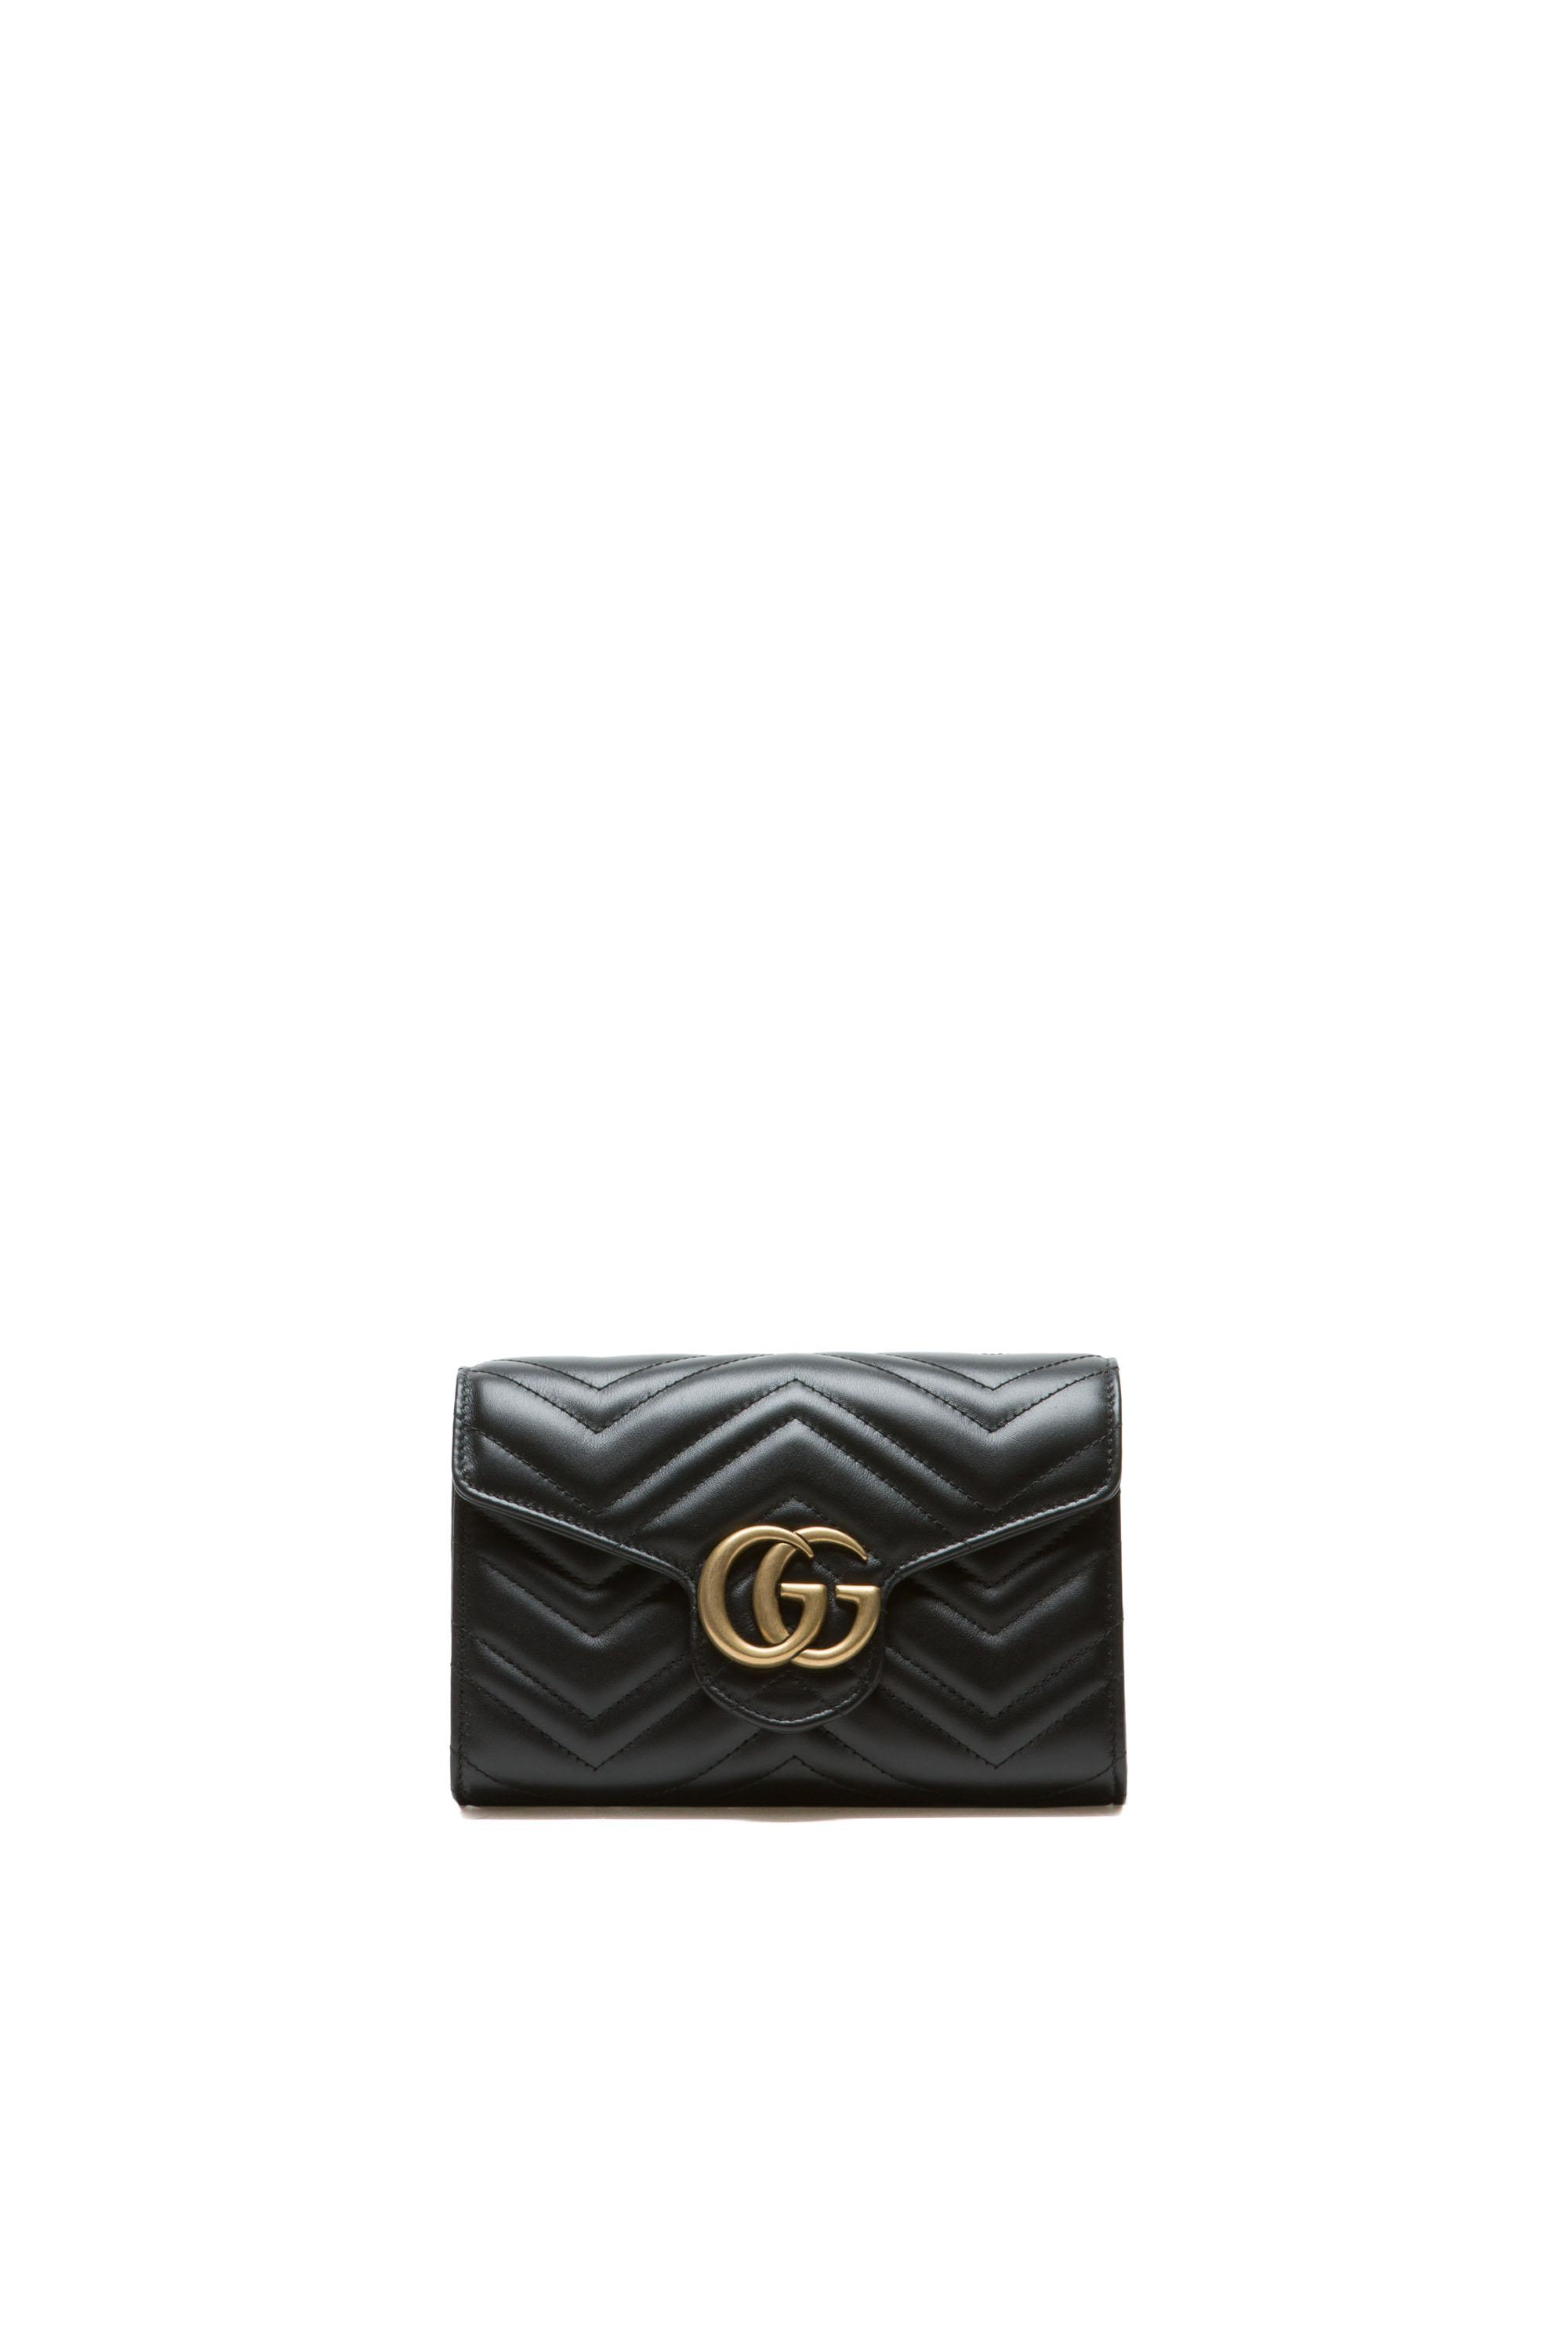 bca94fd6dfb SMALL LEATHER GOODS GUCCI 474575 DRW1T